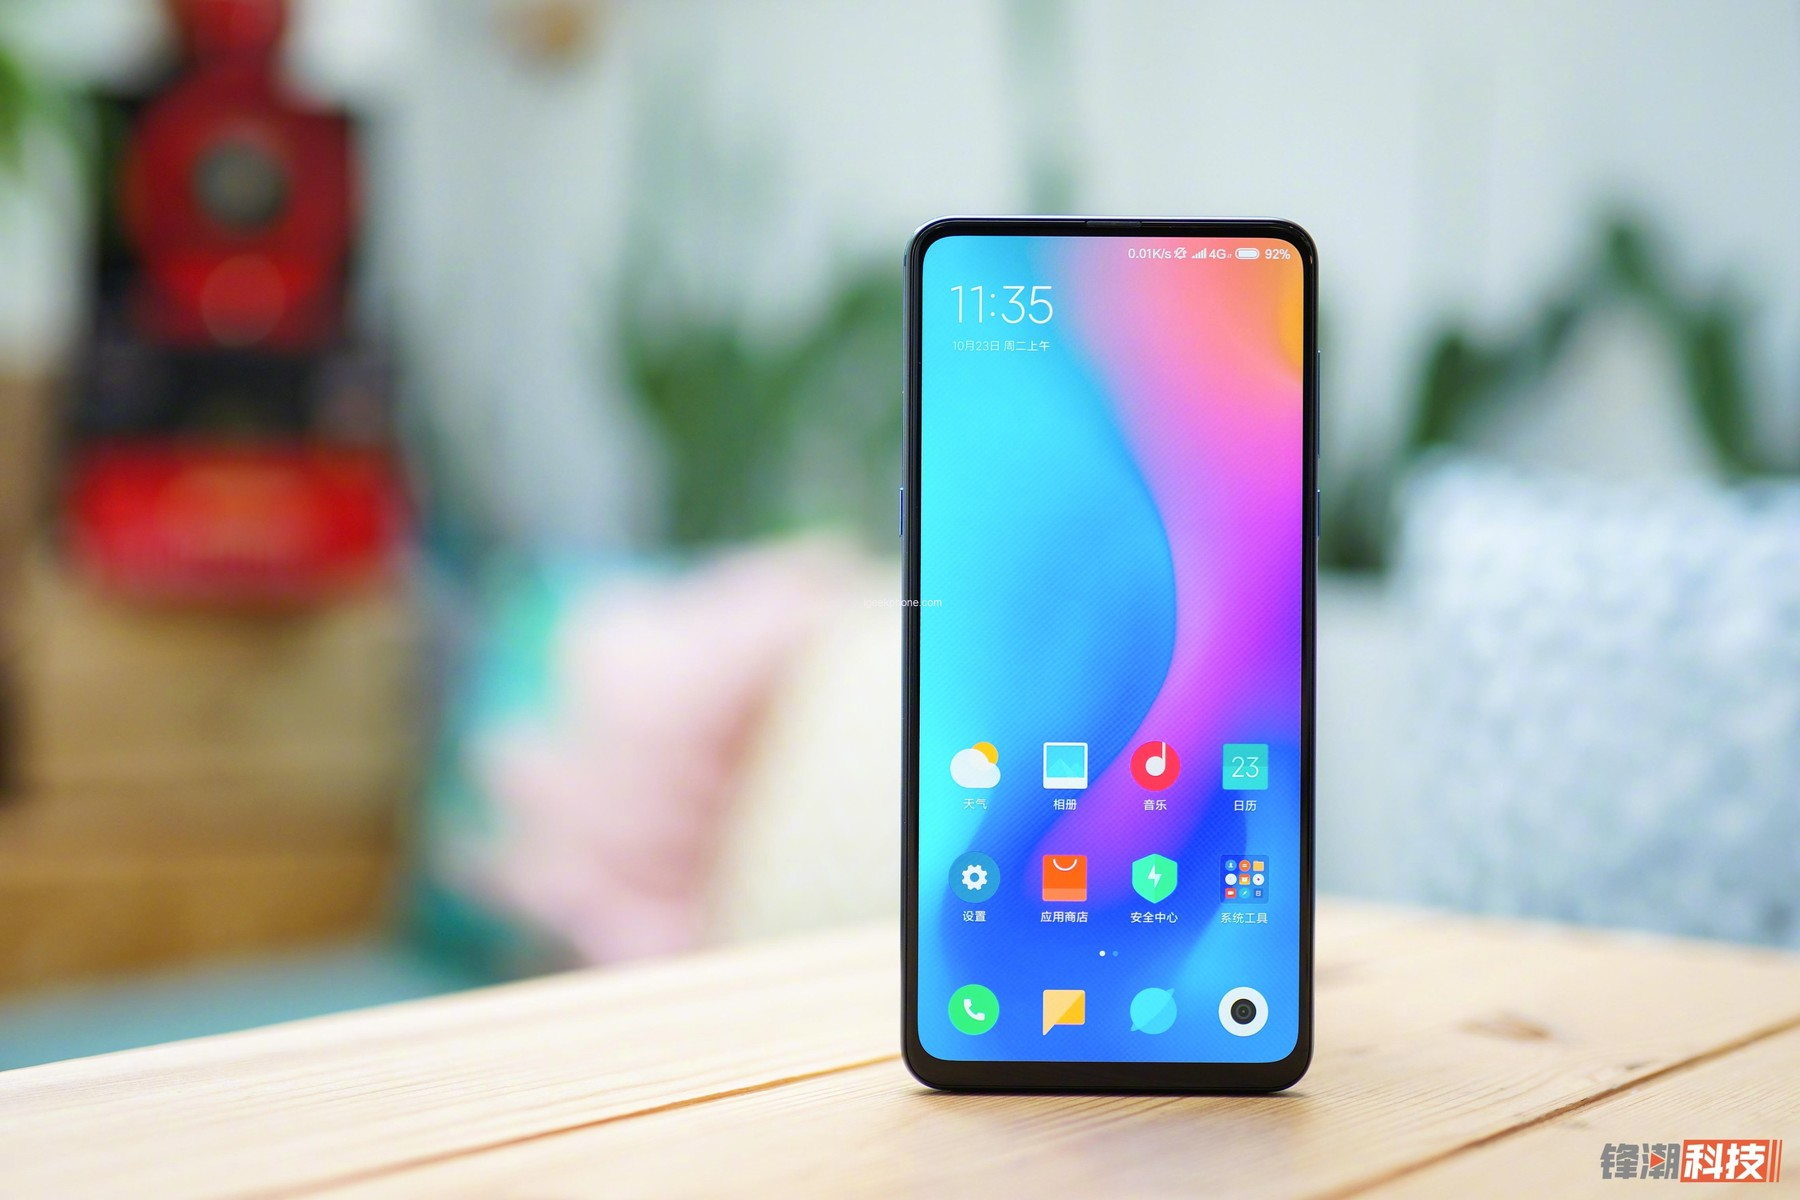 Details of the Xiaomi Mi 9 surface — Snapdragon 8150 and